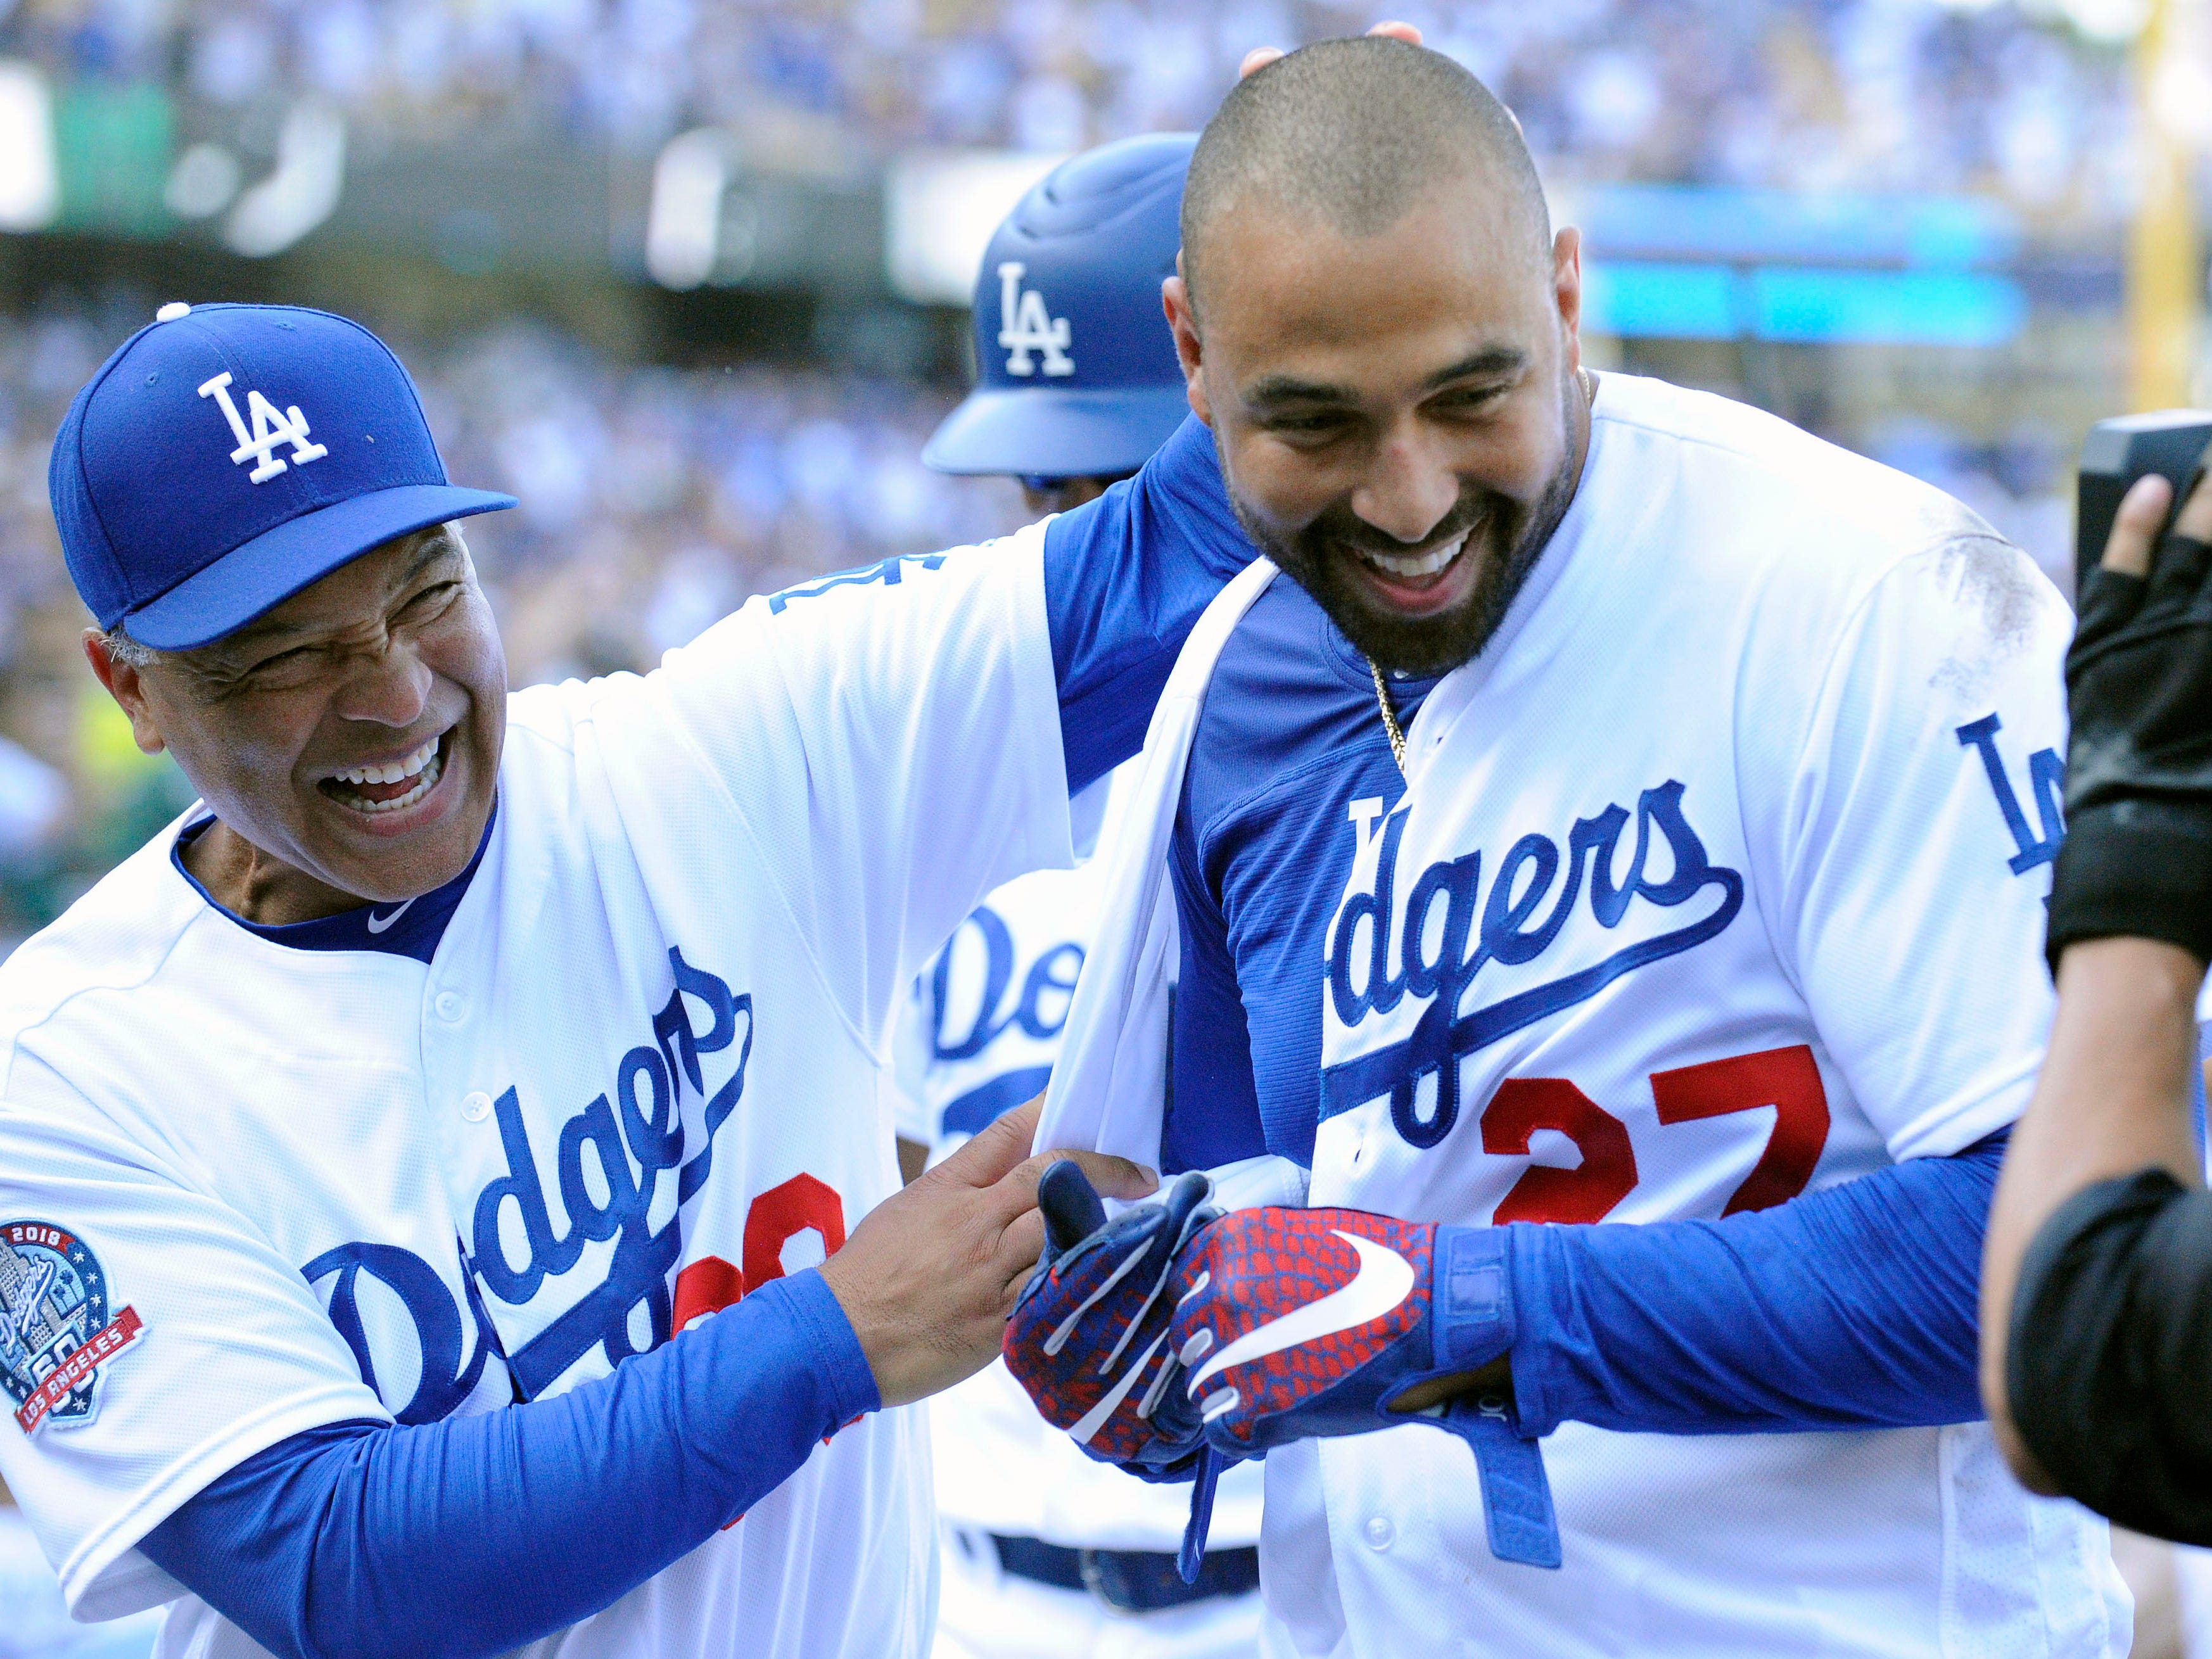 September 2, 2018; Los Angeles, CA, USA; Los Angeles Dodgers left fielder Matt Kemp (27) celebrates with manager Dave Roberts (30) after hitting a two run RBI walk off double against the Arizona Diamondbacks in the ninth inning at Dodger Stadium. Mandatory Credit: Gary A. Vasquez-USA TODAY Sports